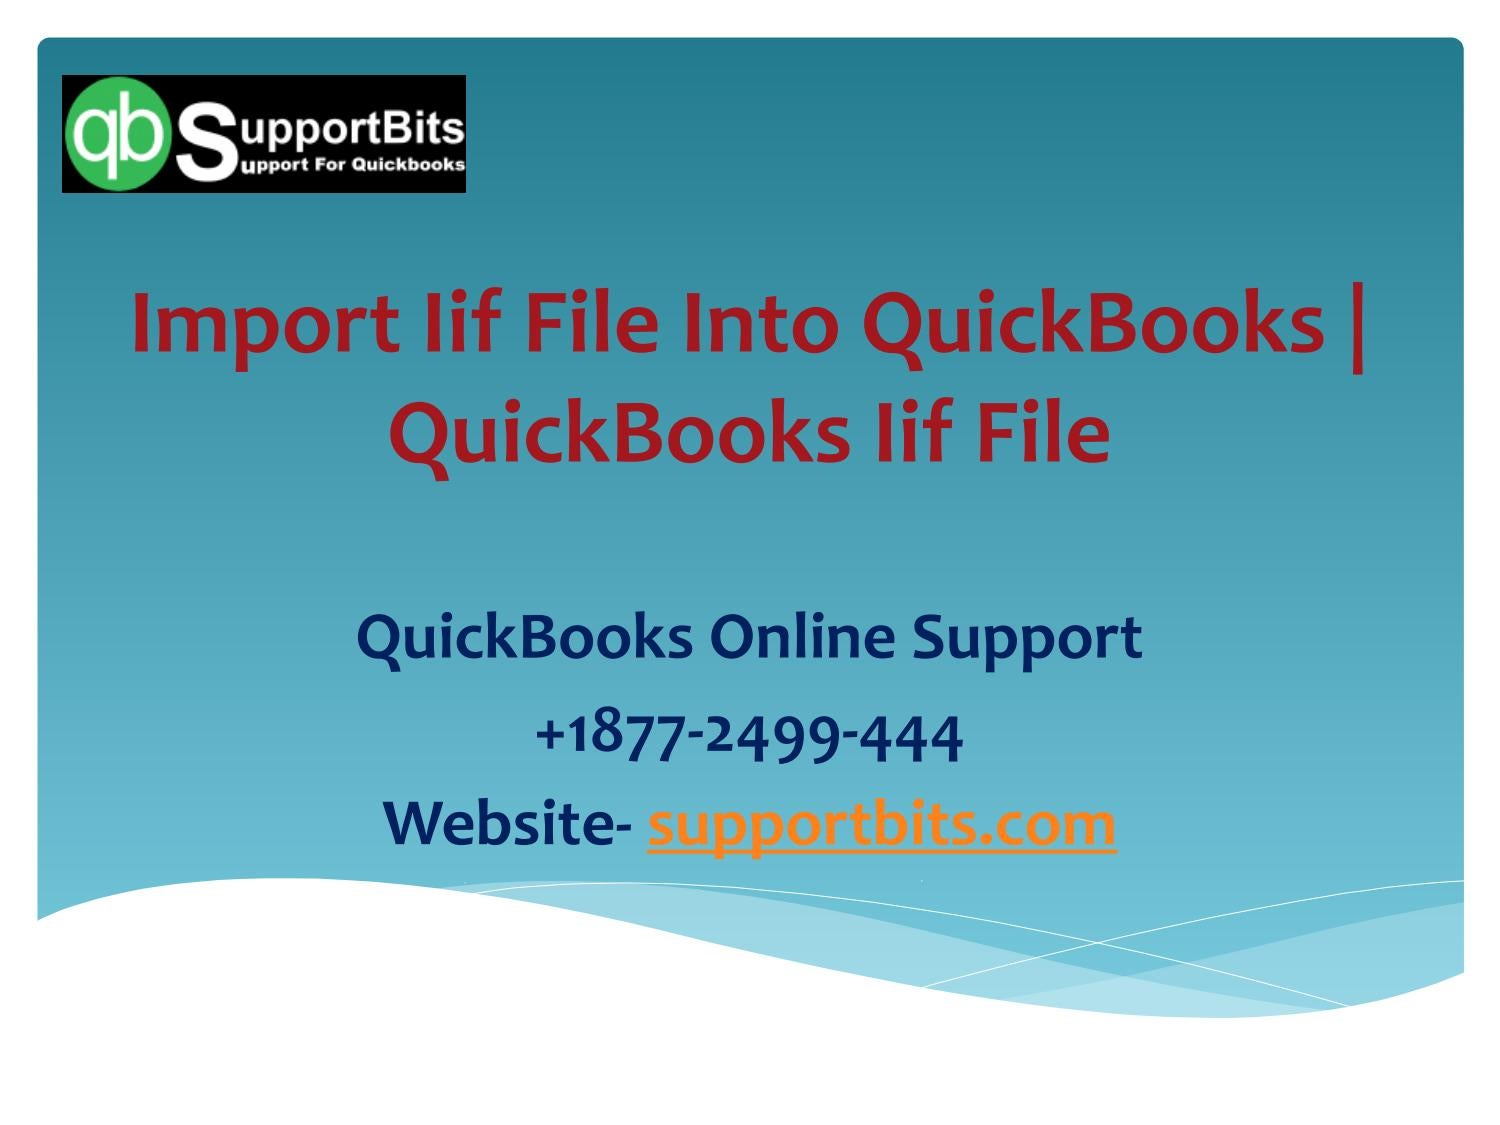 Import Iif File Into Quickbooks | Quickbooks Iif File by